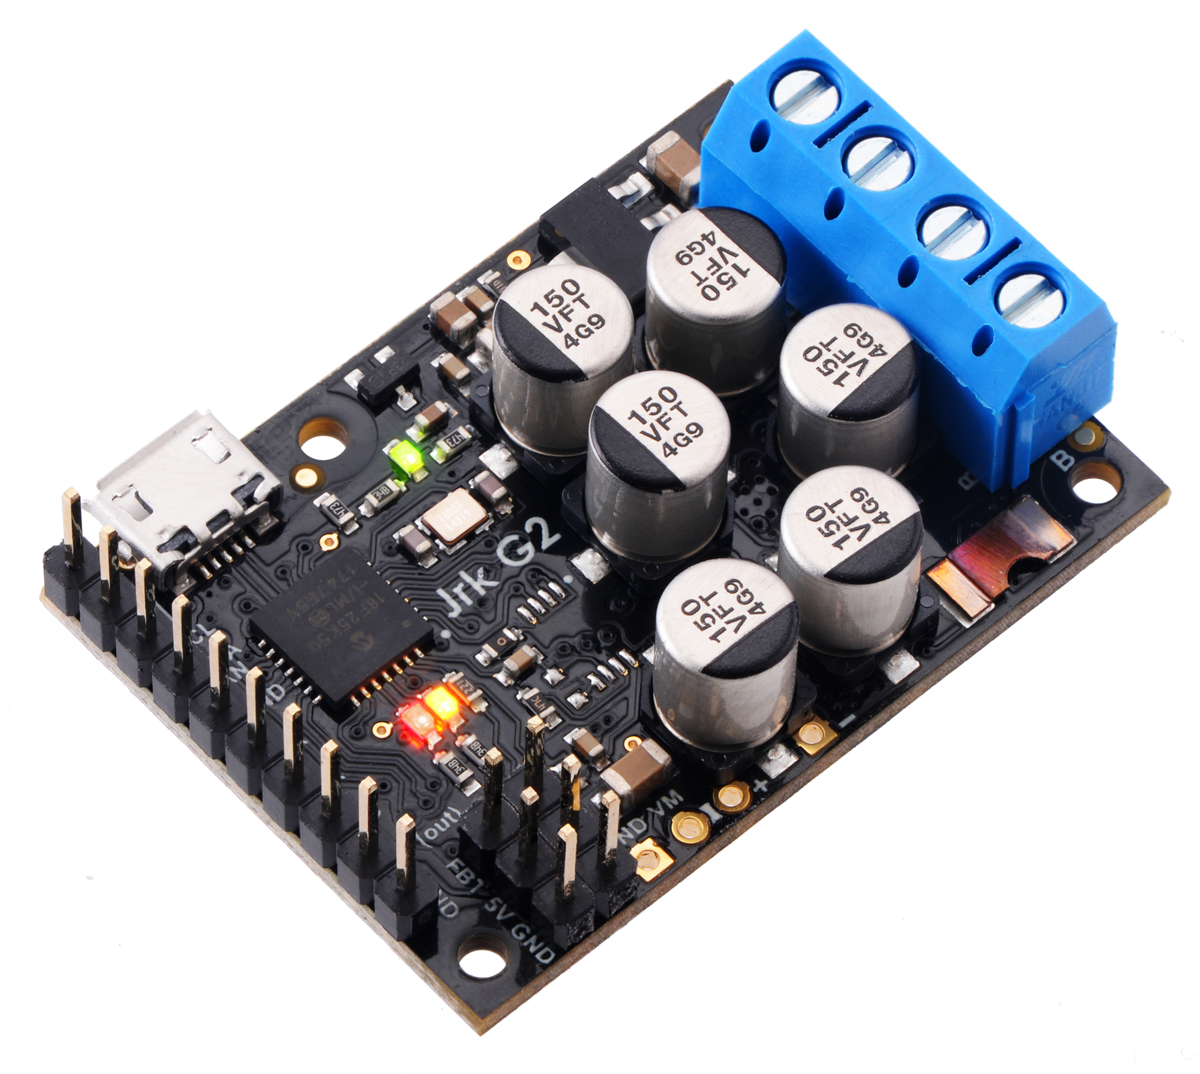 Pololu Jrk G2 Motor Controller Users Guide As Shown For The Electronic Watchdog Circuit It Has Ability Of 18v27 Or 24v21 Usb With Included Terminal Blocks And Headers Soldered